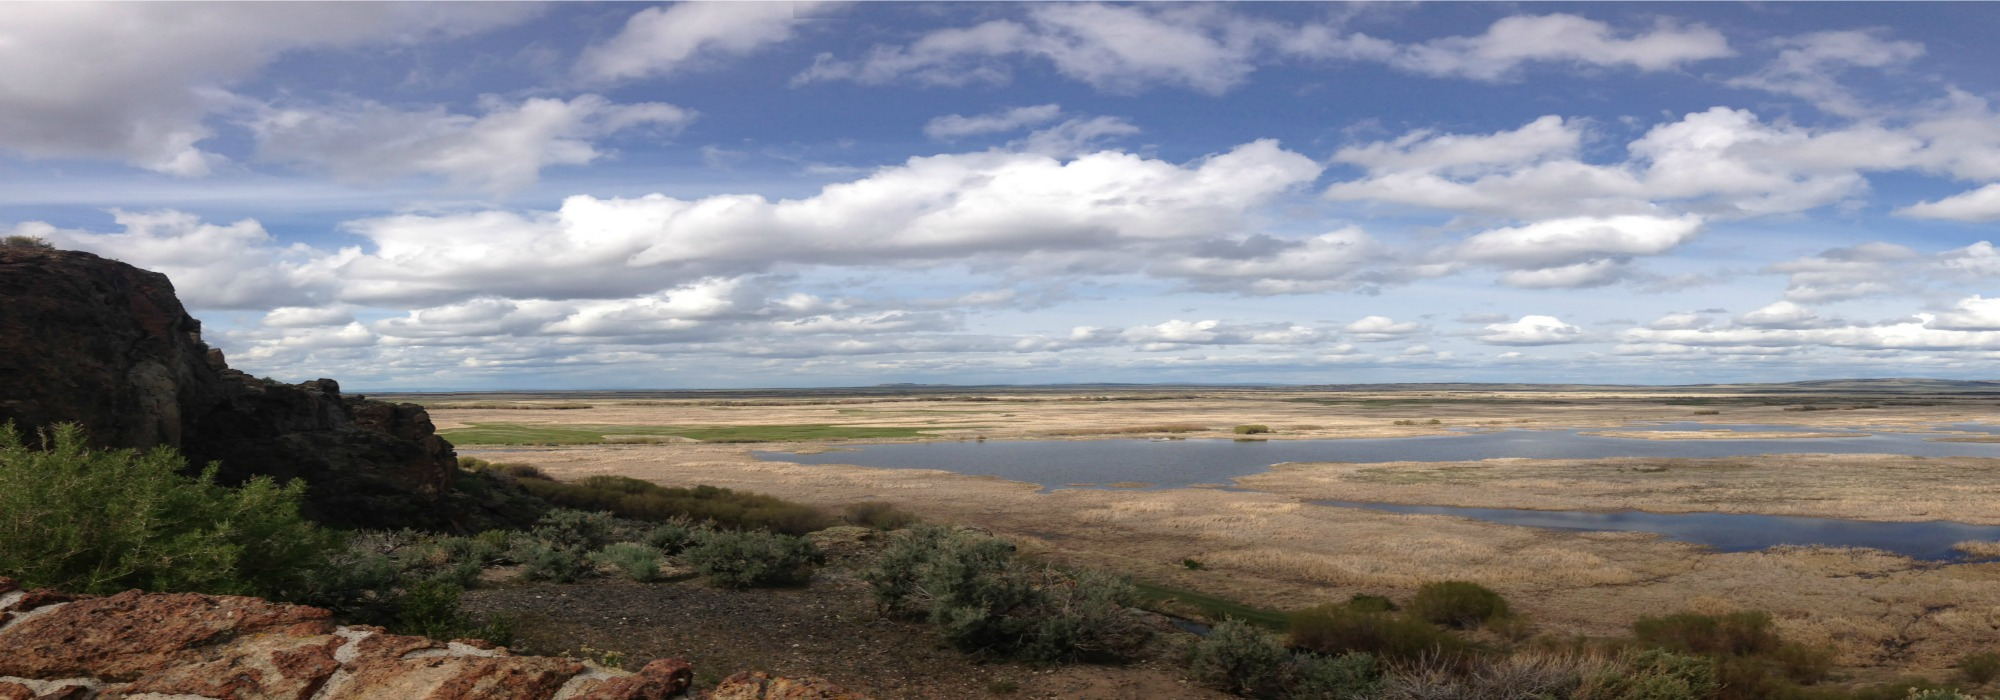 Buena Vista Overlook, Malheur National Wildlife Refuge